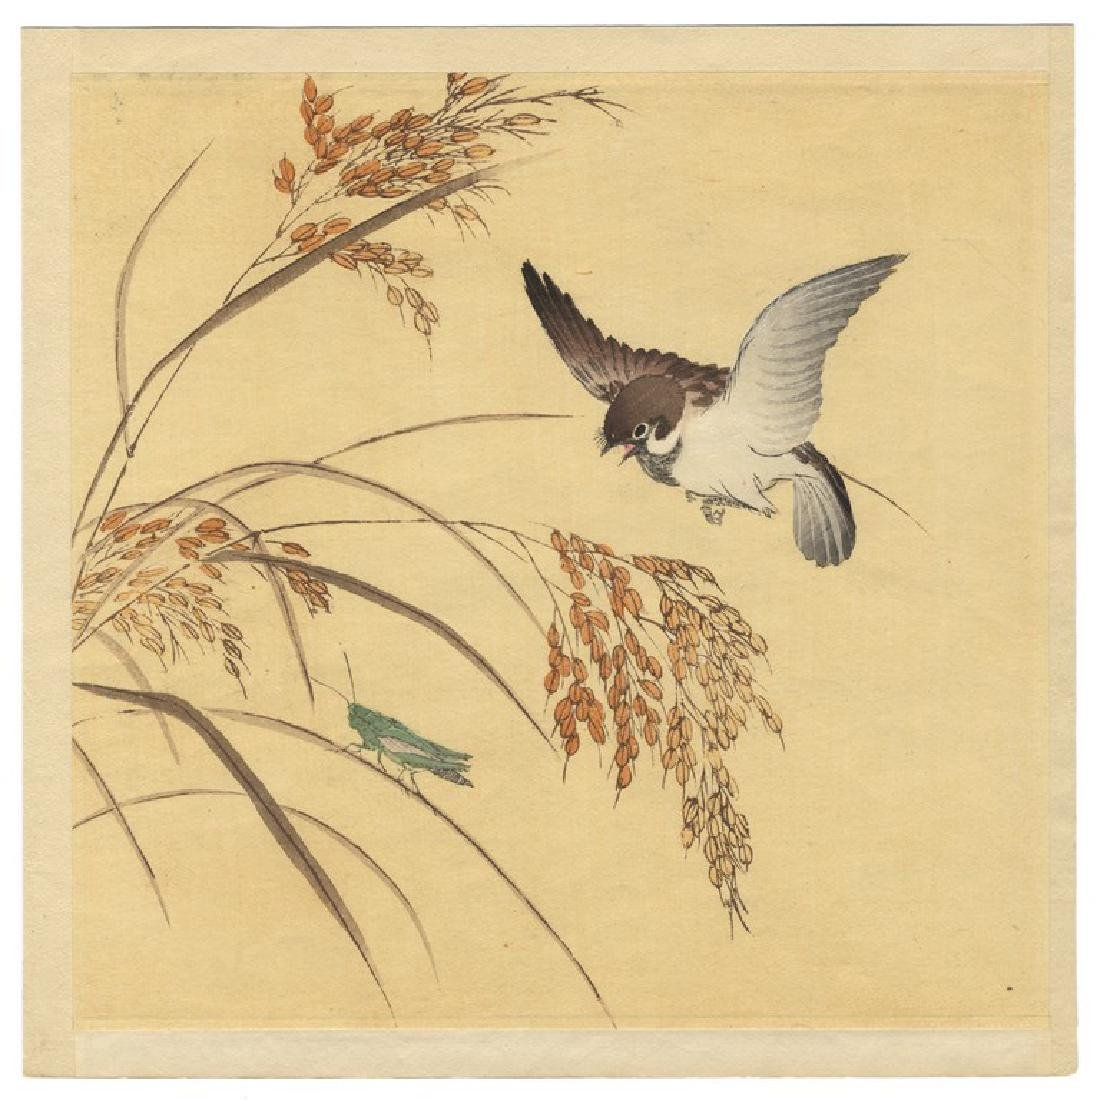 Unspecified: Sparrow and Grasshopper